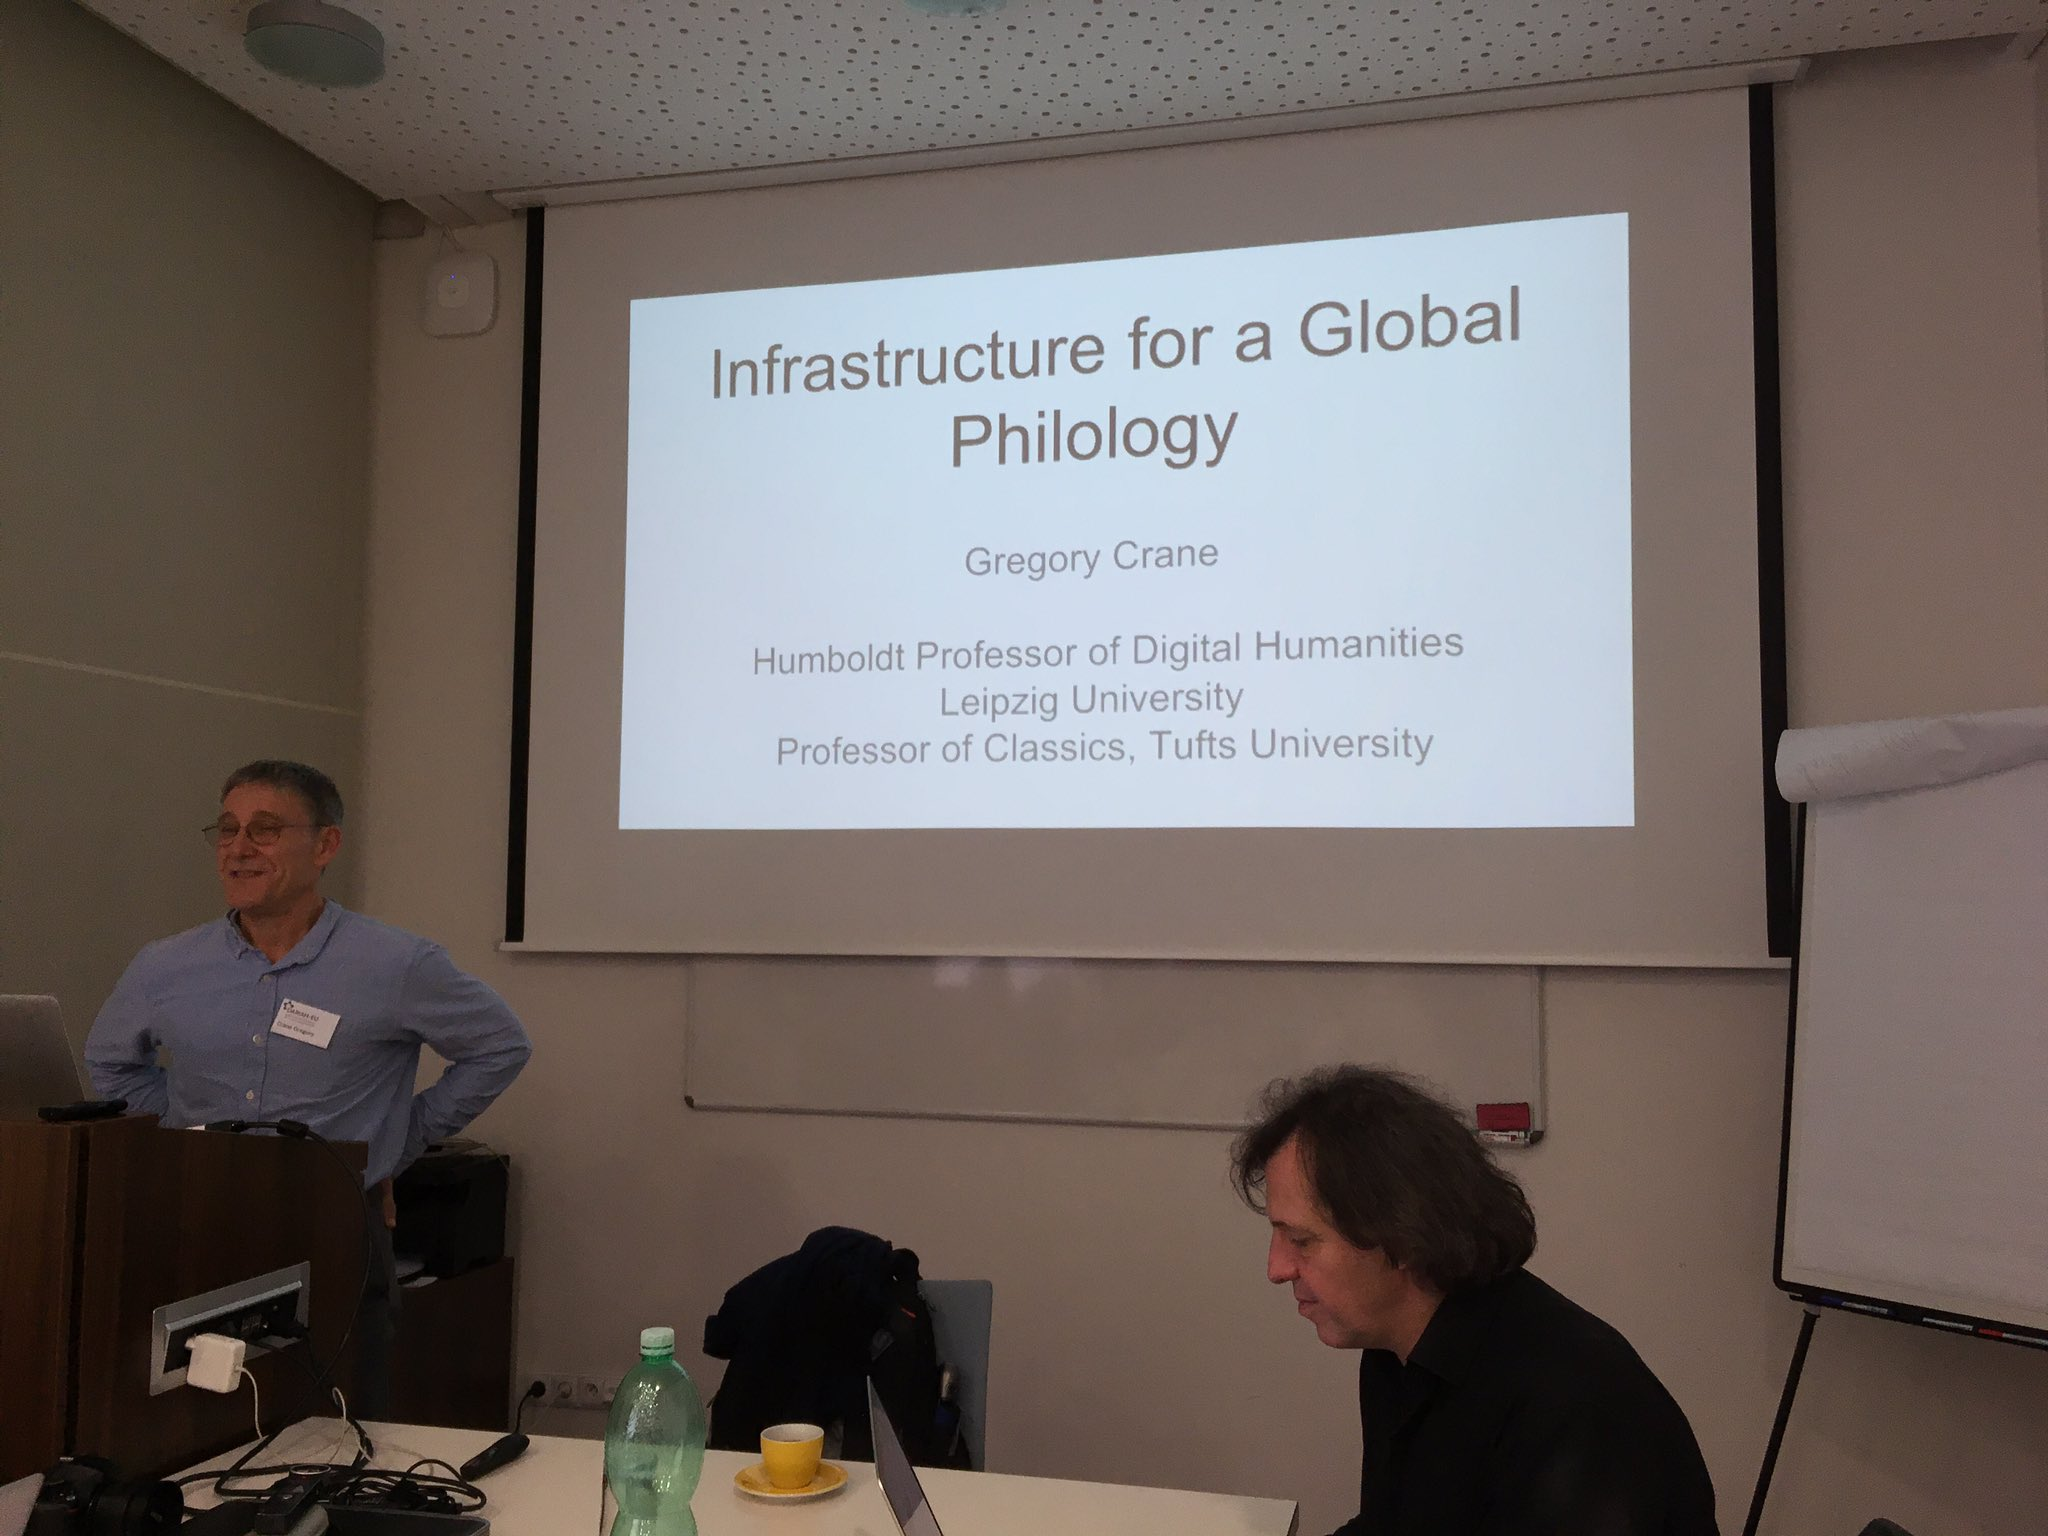 Last but not least @GegoryR  'Infrastructure for an age of Global Philology' #Dariah https://t.co/XgUDh9jXt5